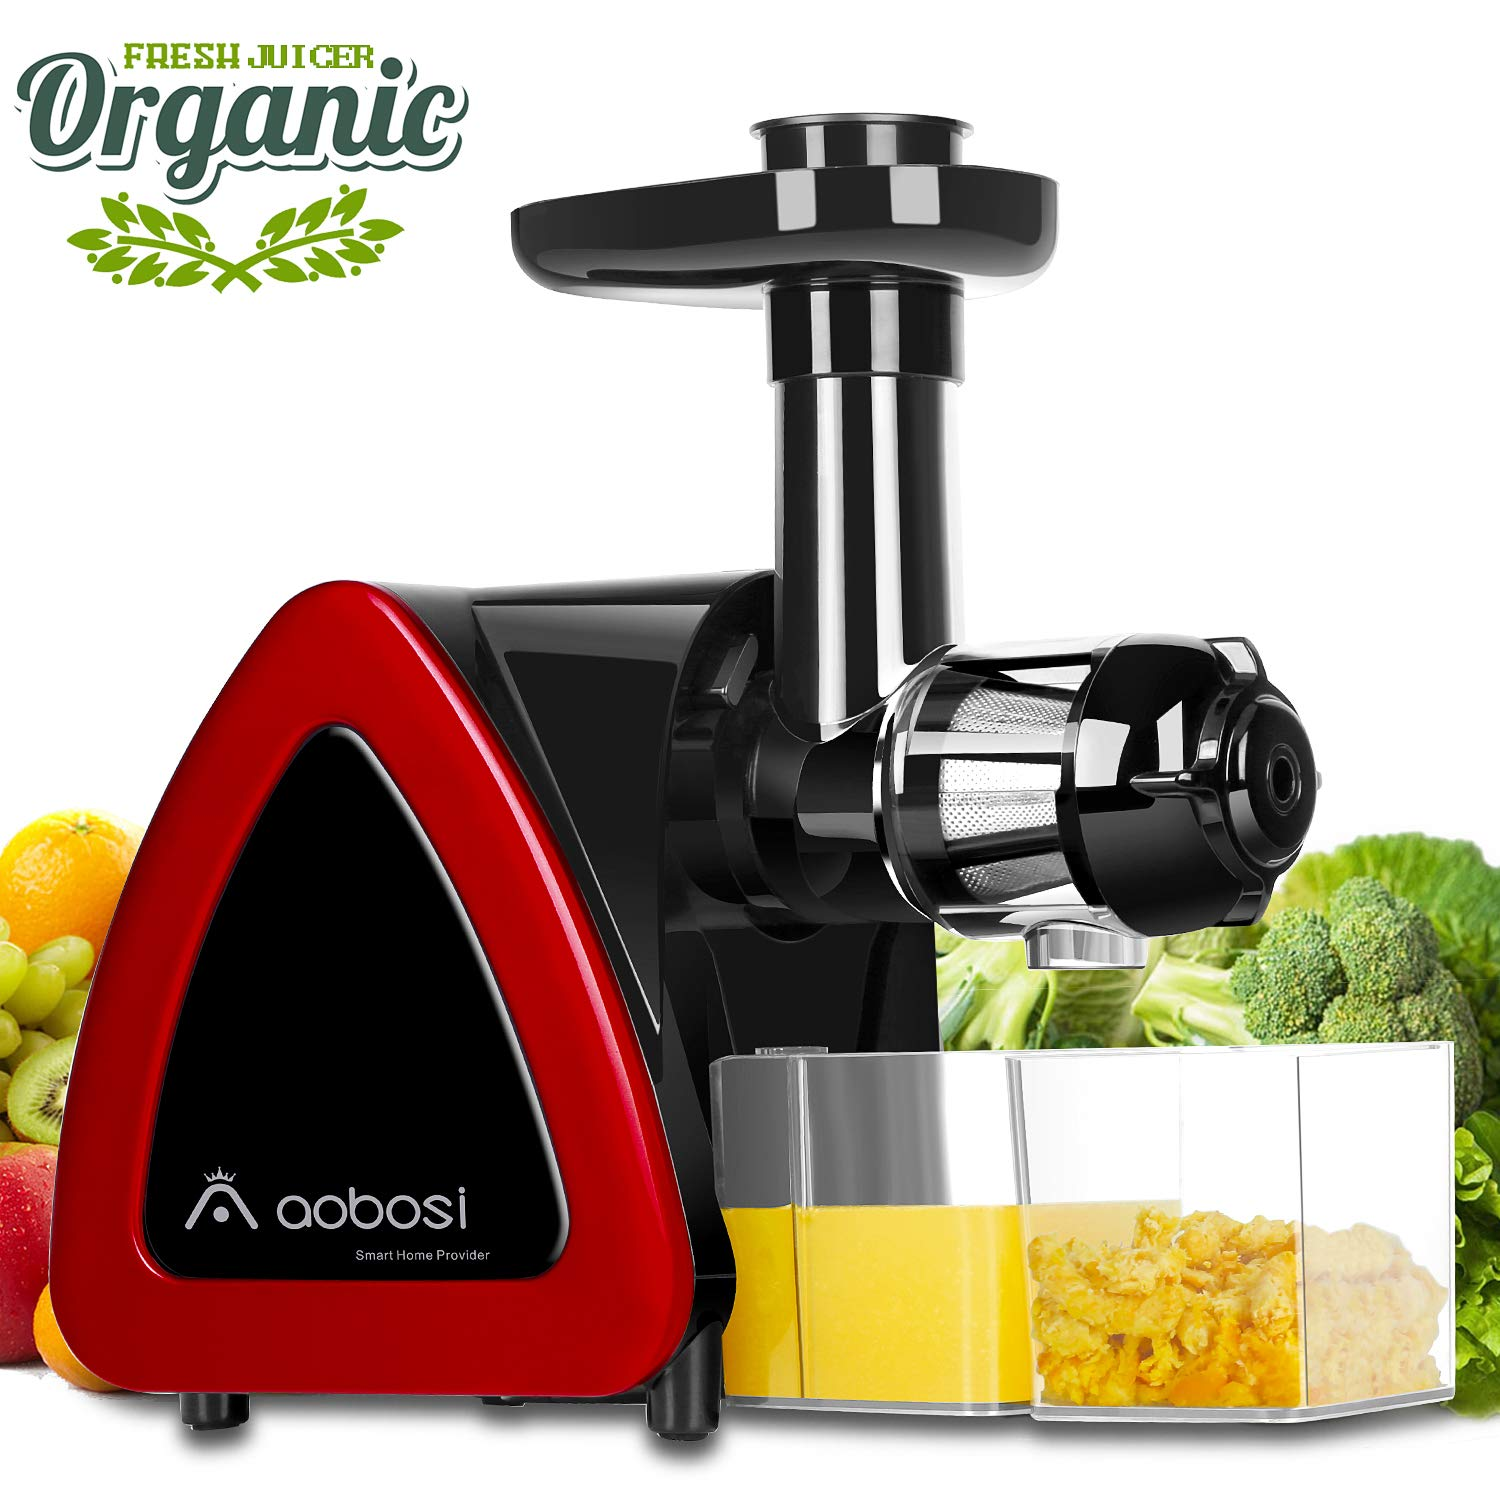 Aobosi Slow Masticating juicer Extractor, Cold Press Juicer Machine, Quiet Motor, Reverse Function, High Nutrient Fruit and Vegetable Juice with Juice Jug & Brush for Cleaning